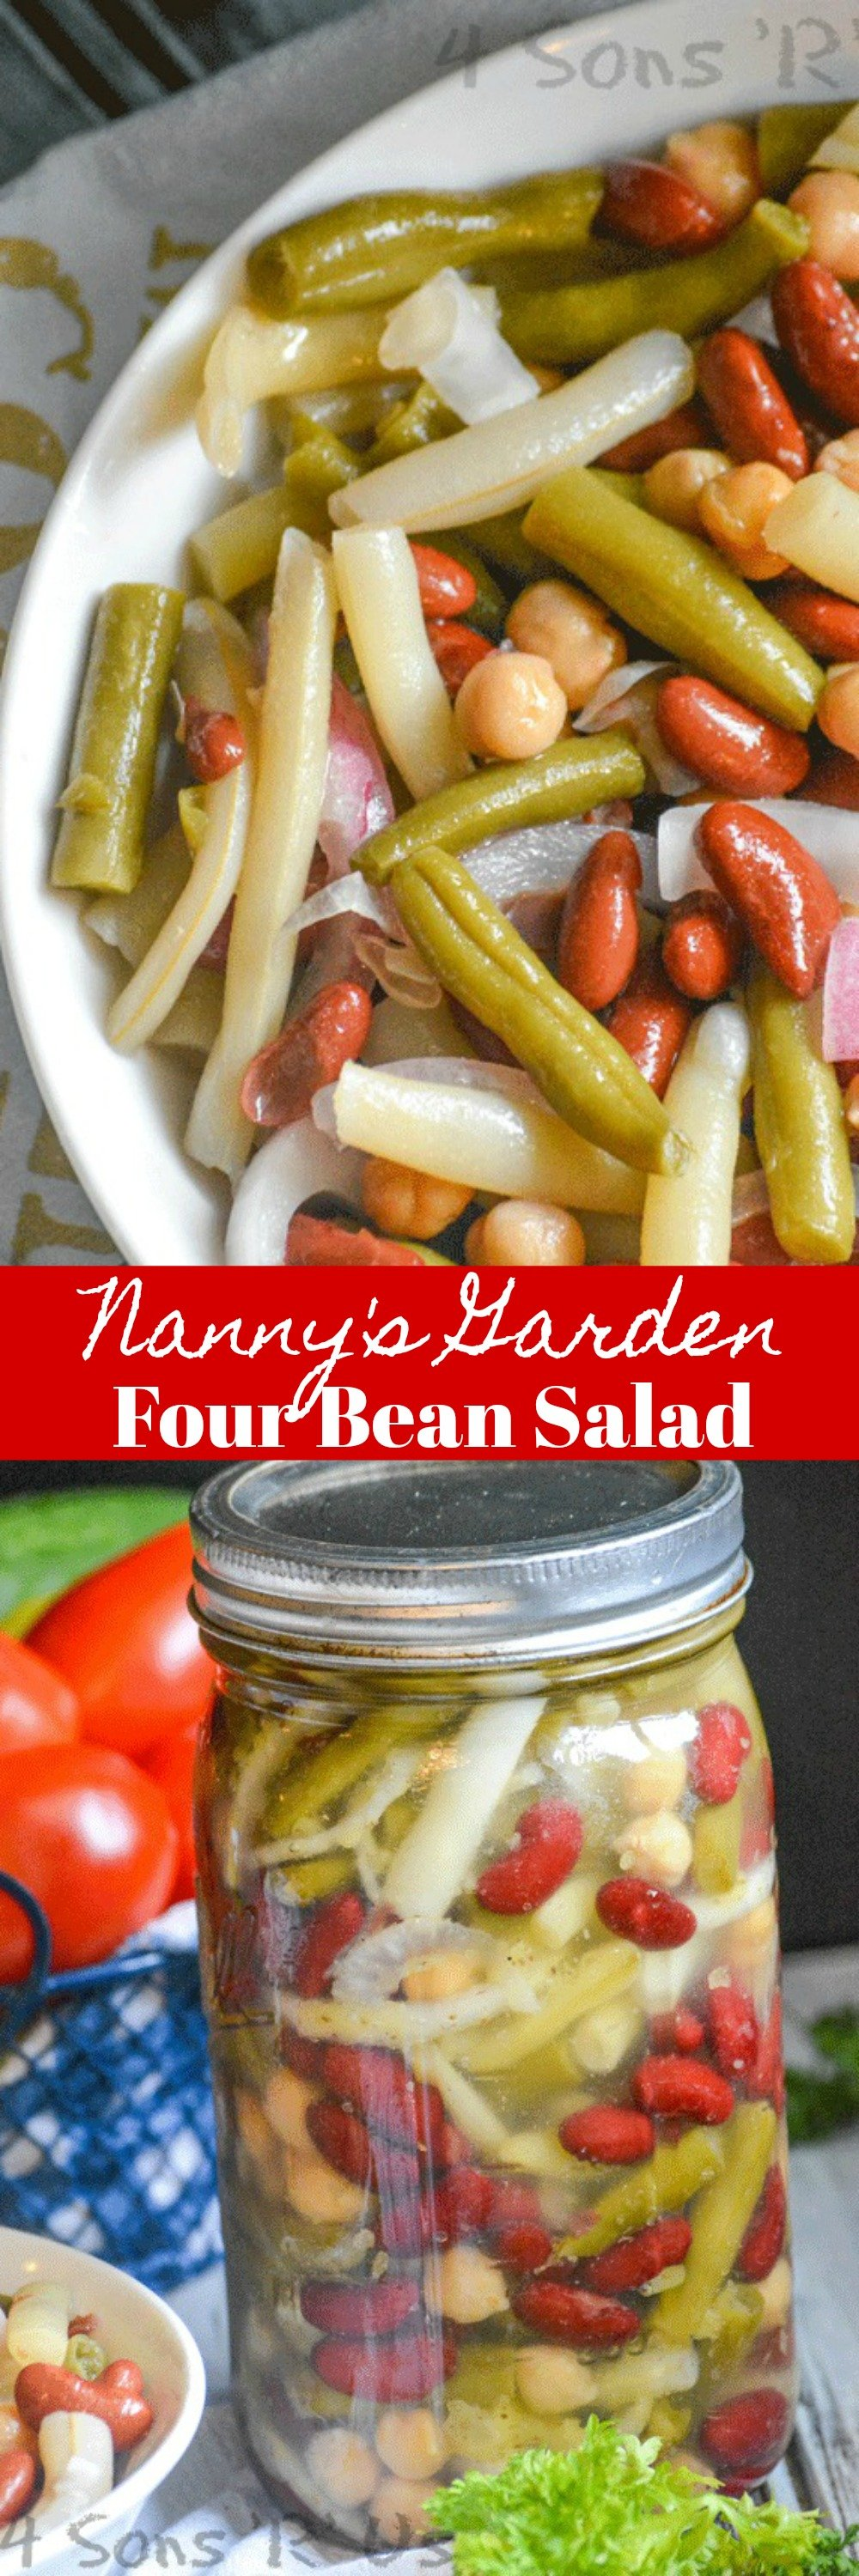 An easy recipe, this version of Nanny's Garden Four Bean Salad is the perfect healthy vegetable-laden dish to bring to Summer potlucks, barbecues, or any grilling parties.